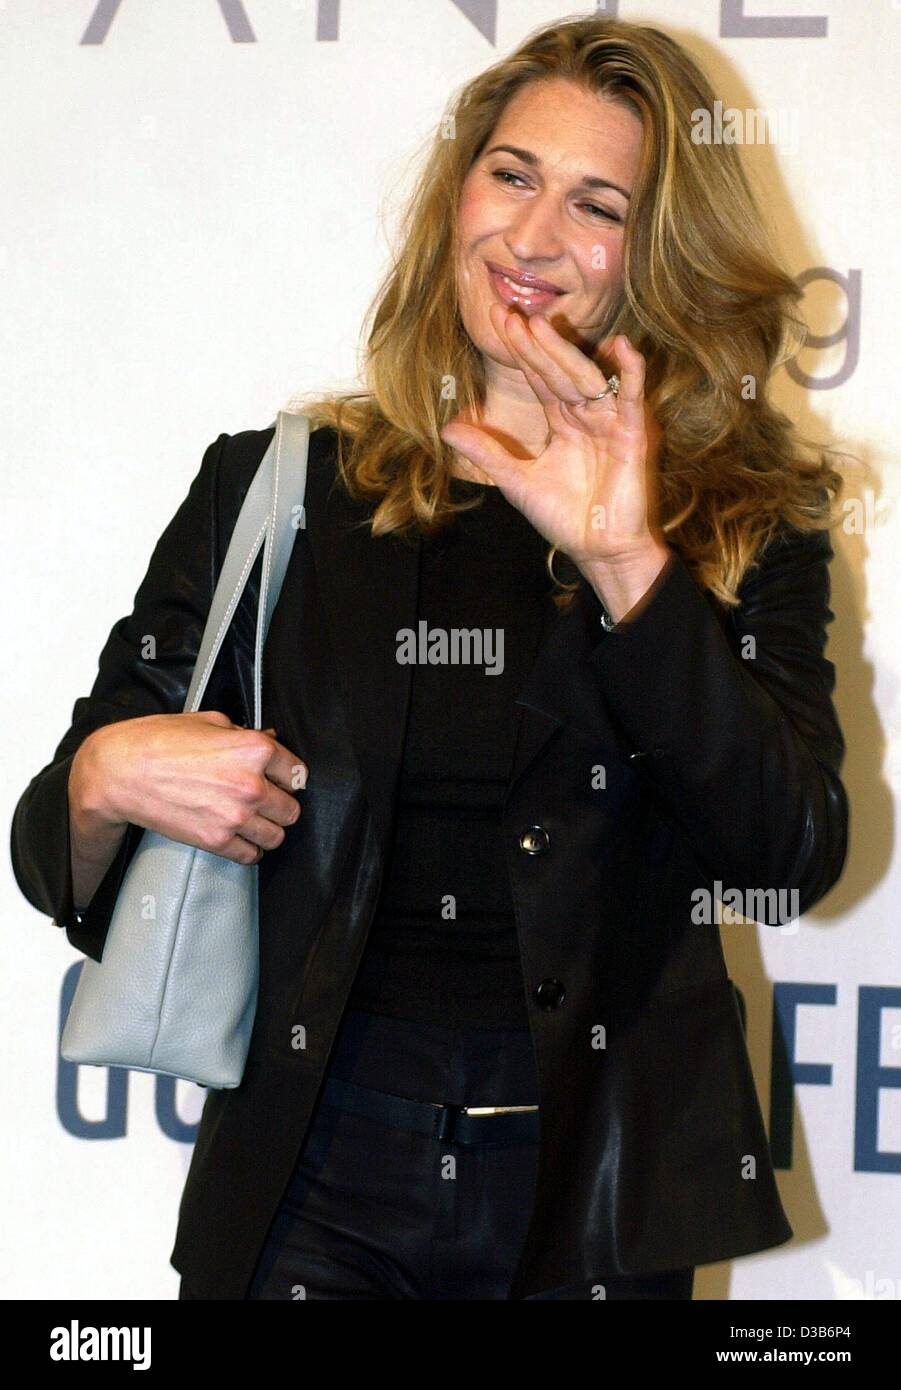 Images Steffi Graf Pretty dpa) - german tennis star steffi graf waves at the end of her